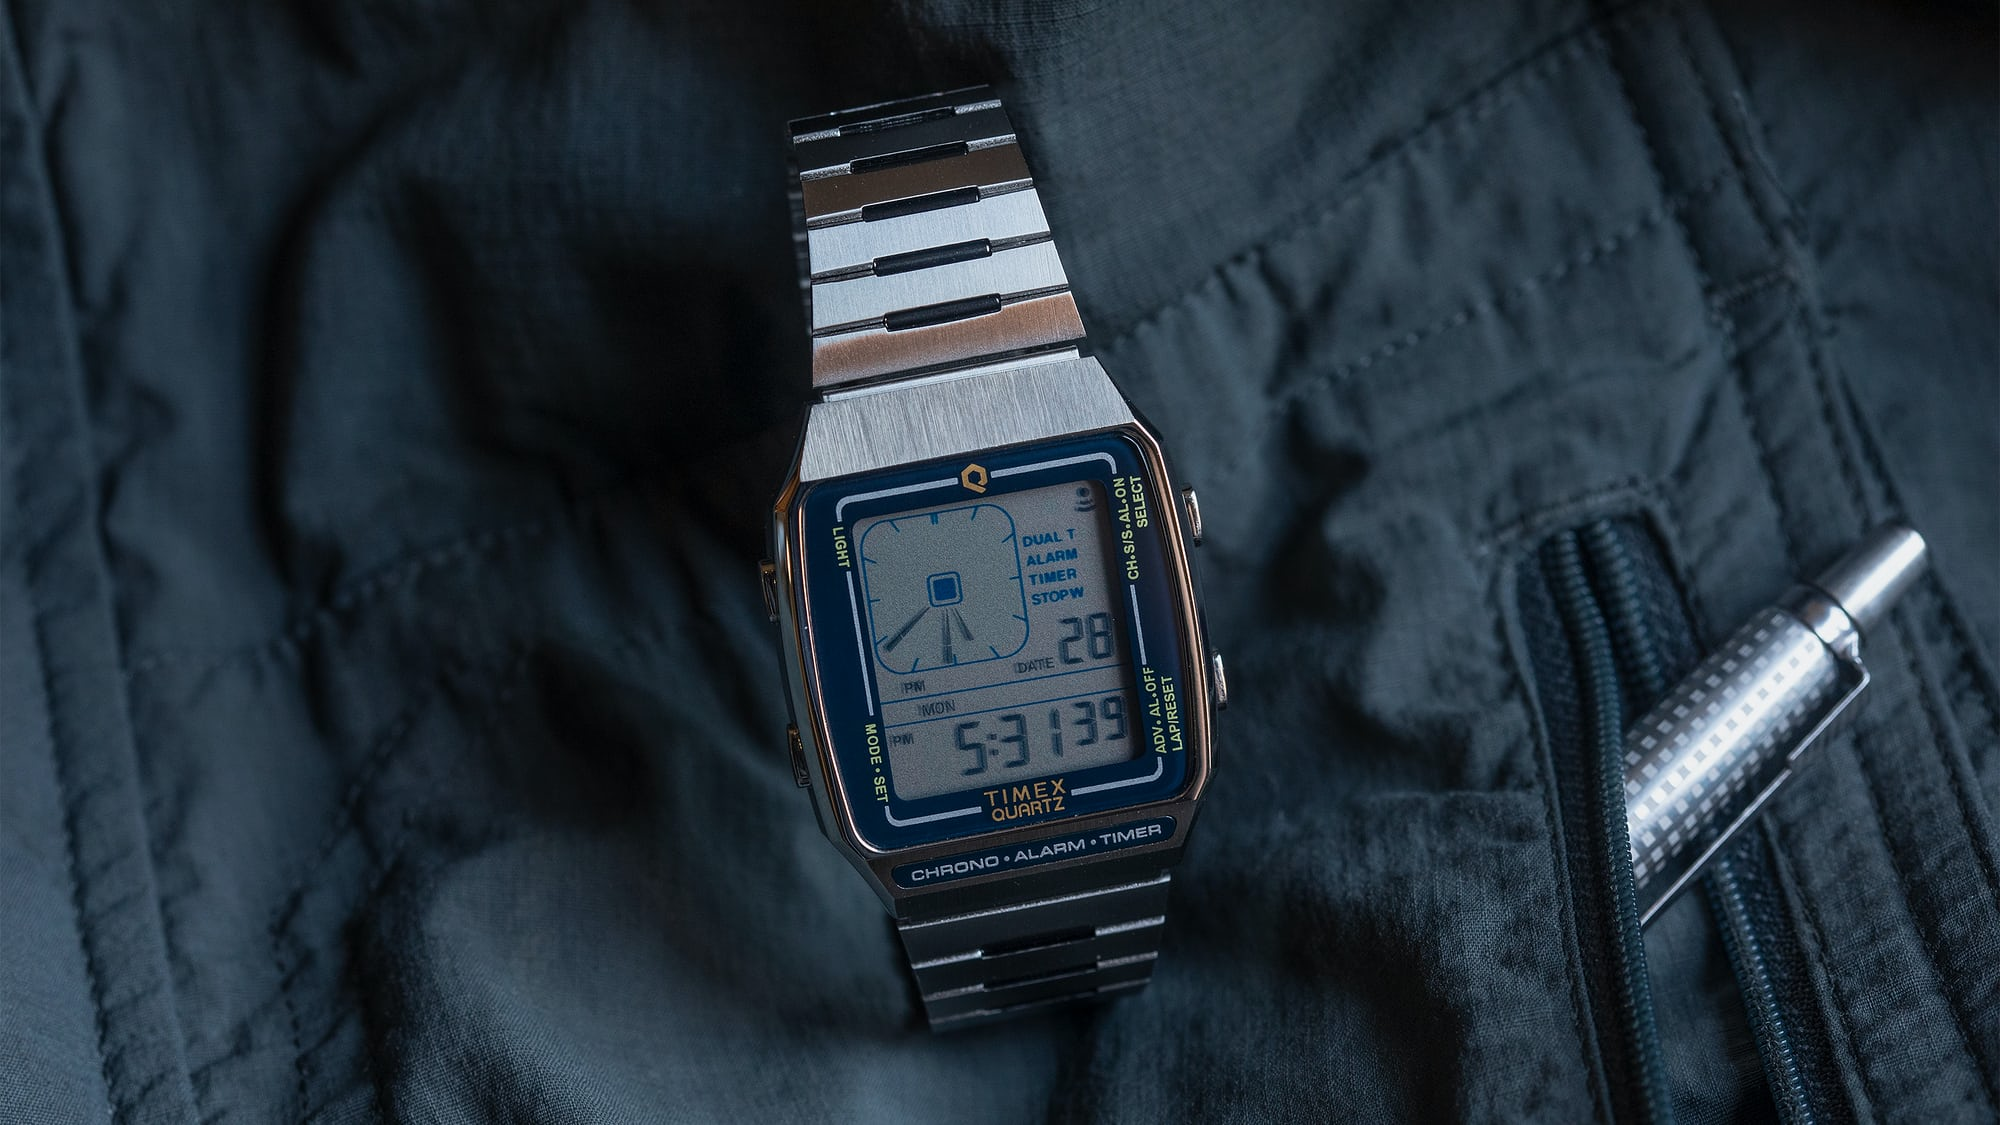 Introducing: The Q Timex Reissue Digital LCA (Live Pics & Pricing)